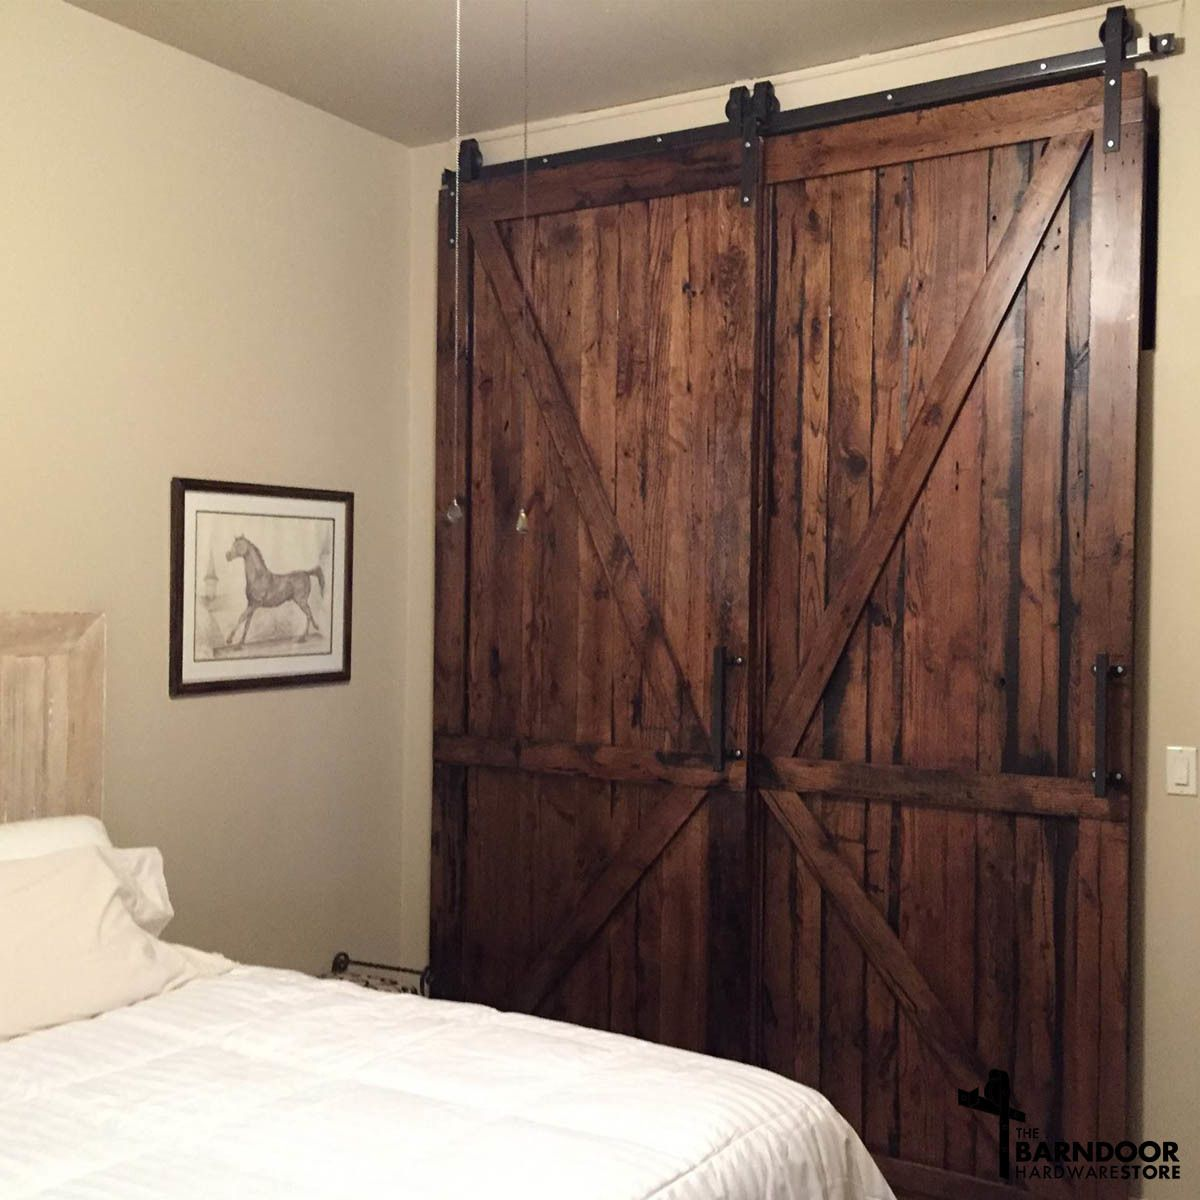 single closet doors. Single Track Bypass© Sliding Barn Door Hardware Lets 2 Doors Overlap Each Other On 1 - SALE! Closet O